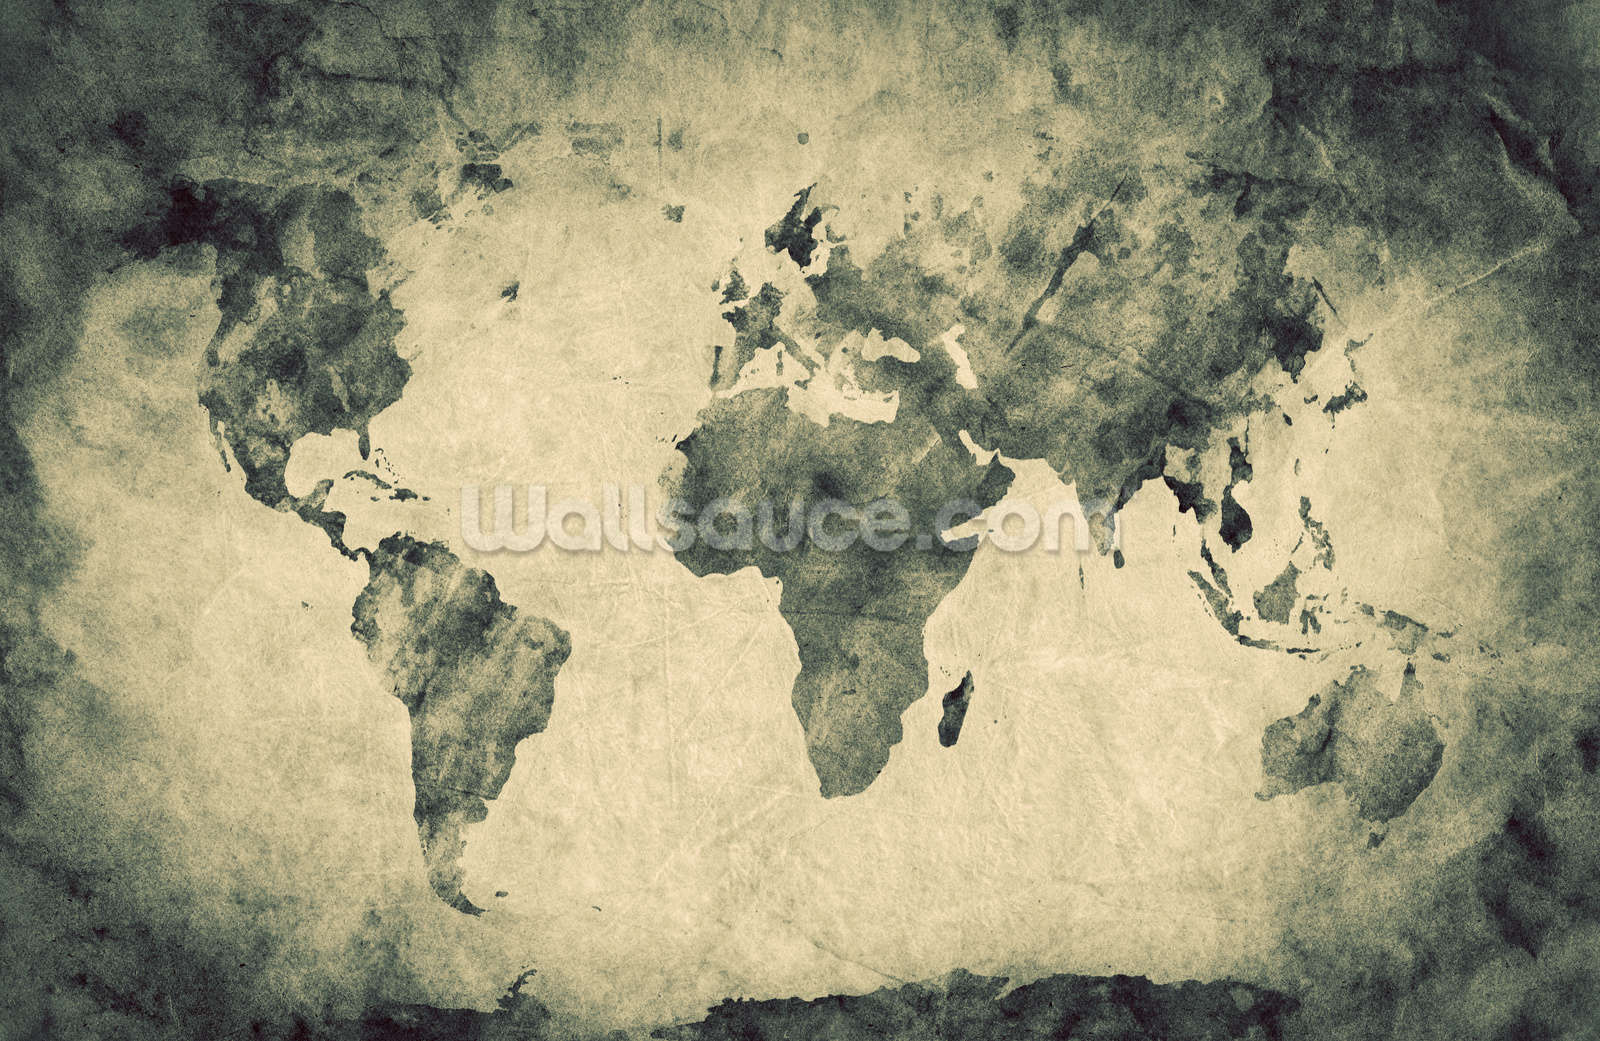 Free stock photos rgbstock free stock images world antique world map vintage world map publicscrutiny Choice Image